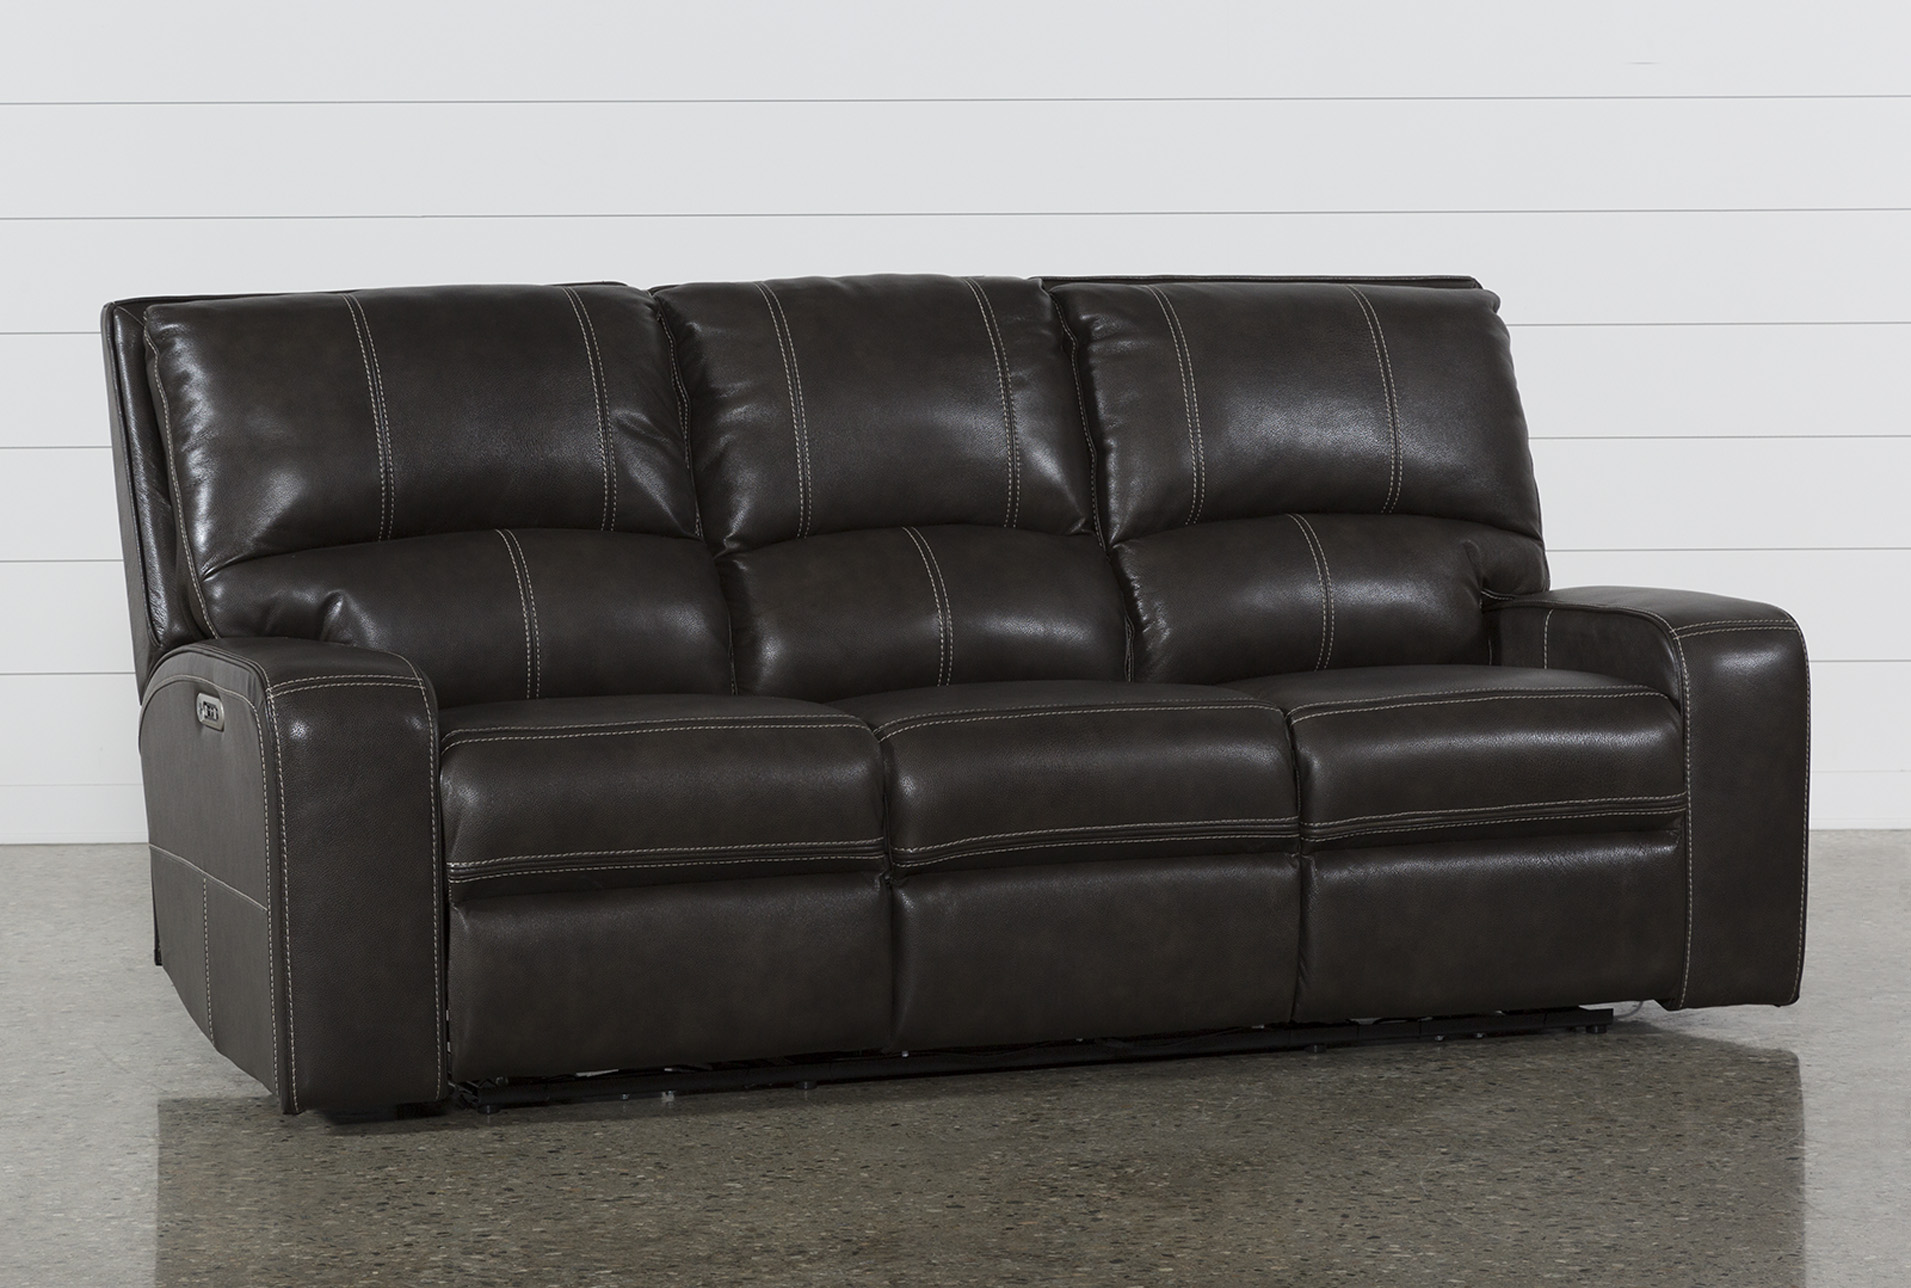 Beau Clyde Grey Leather Power Reclining Sofa W/Power Headrest U0026amp; Usb (Qty: 1)  Has Been Successfully Added To Your Cart.